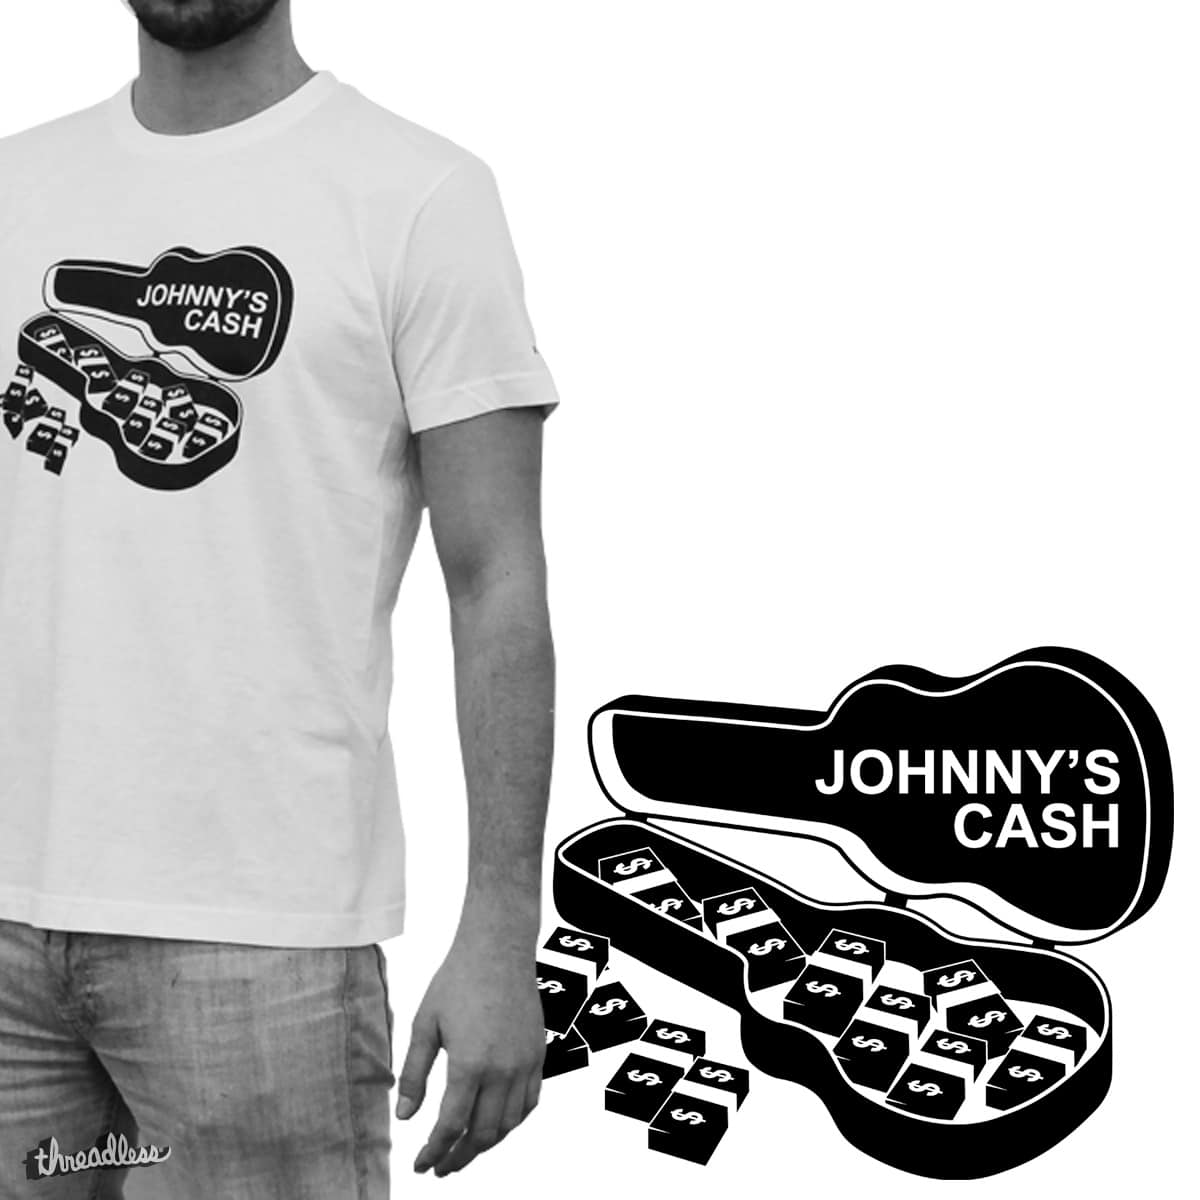 JOHNNY'S CASH by FASTDESIGN on Threadless